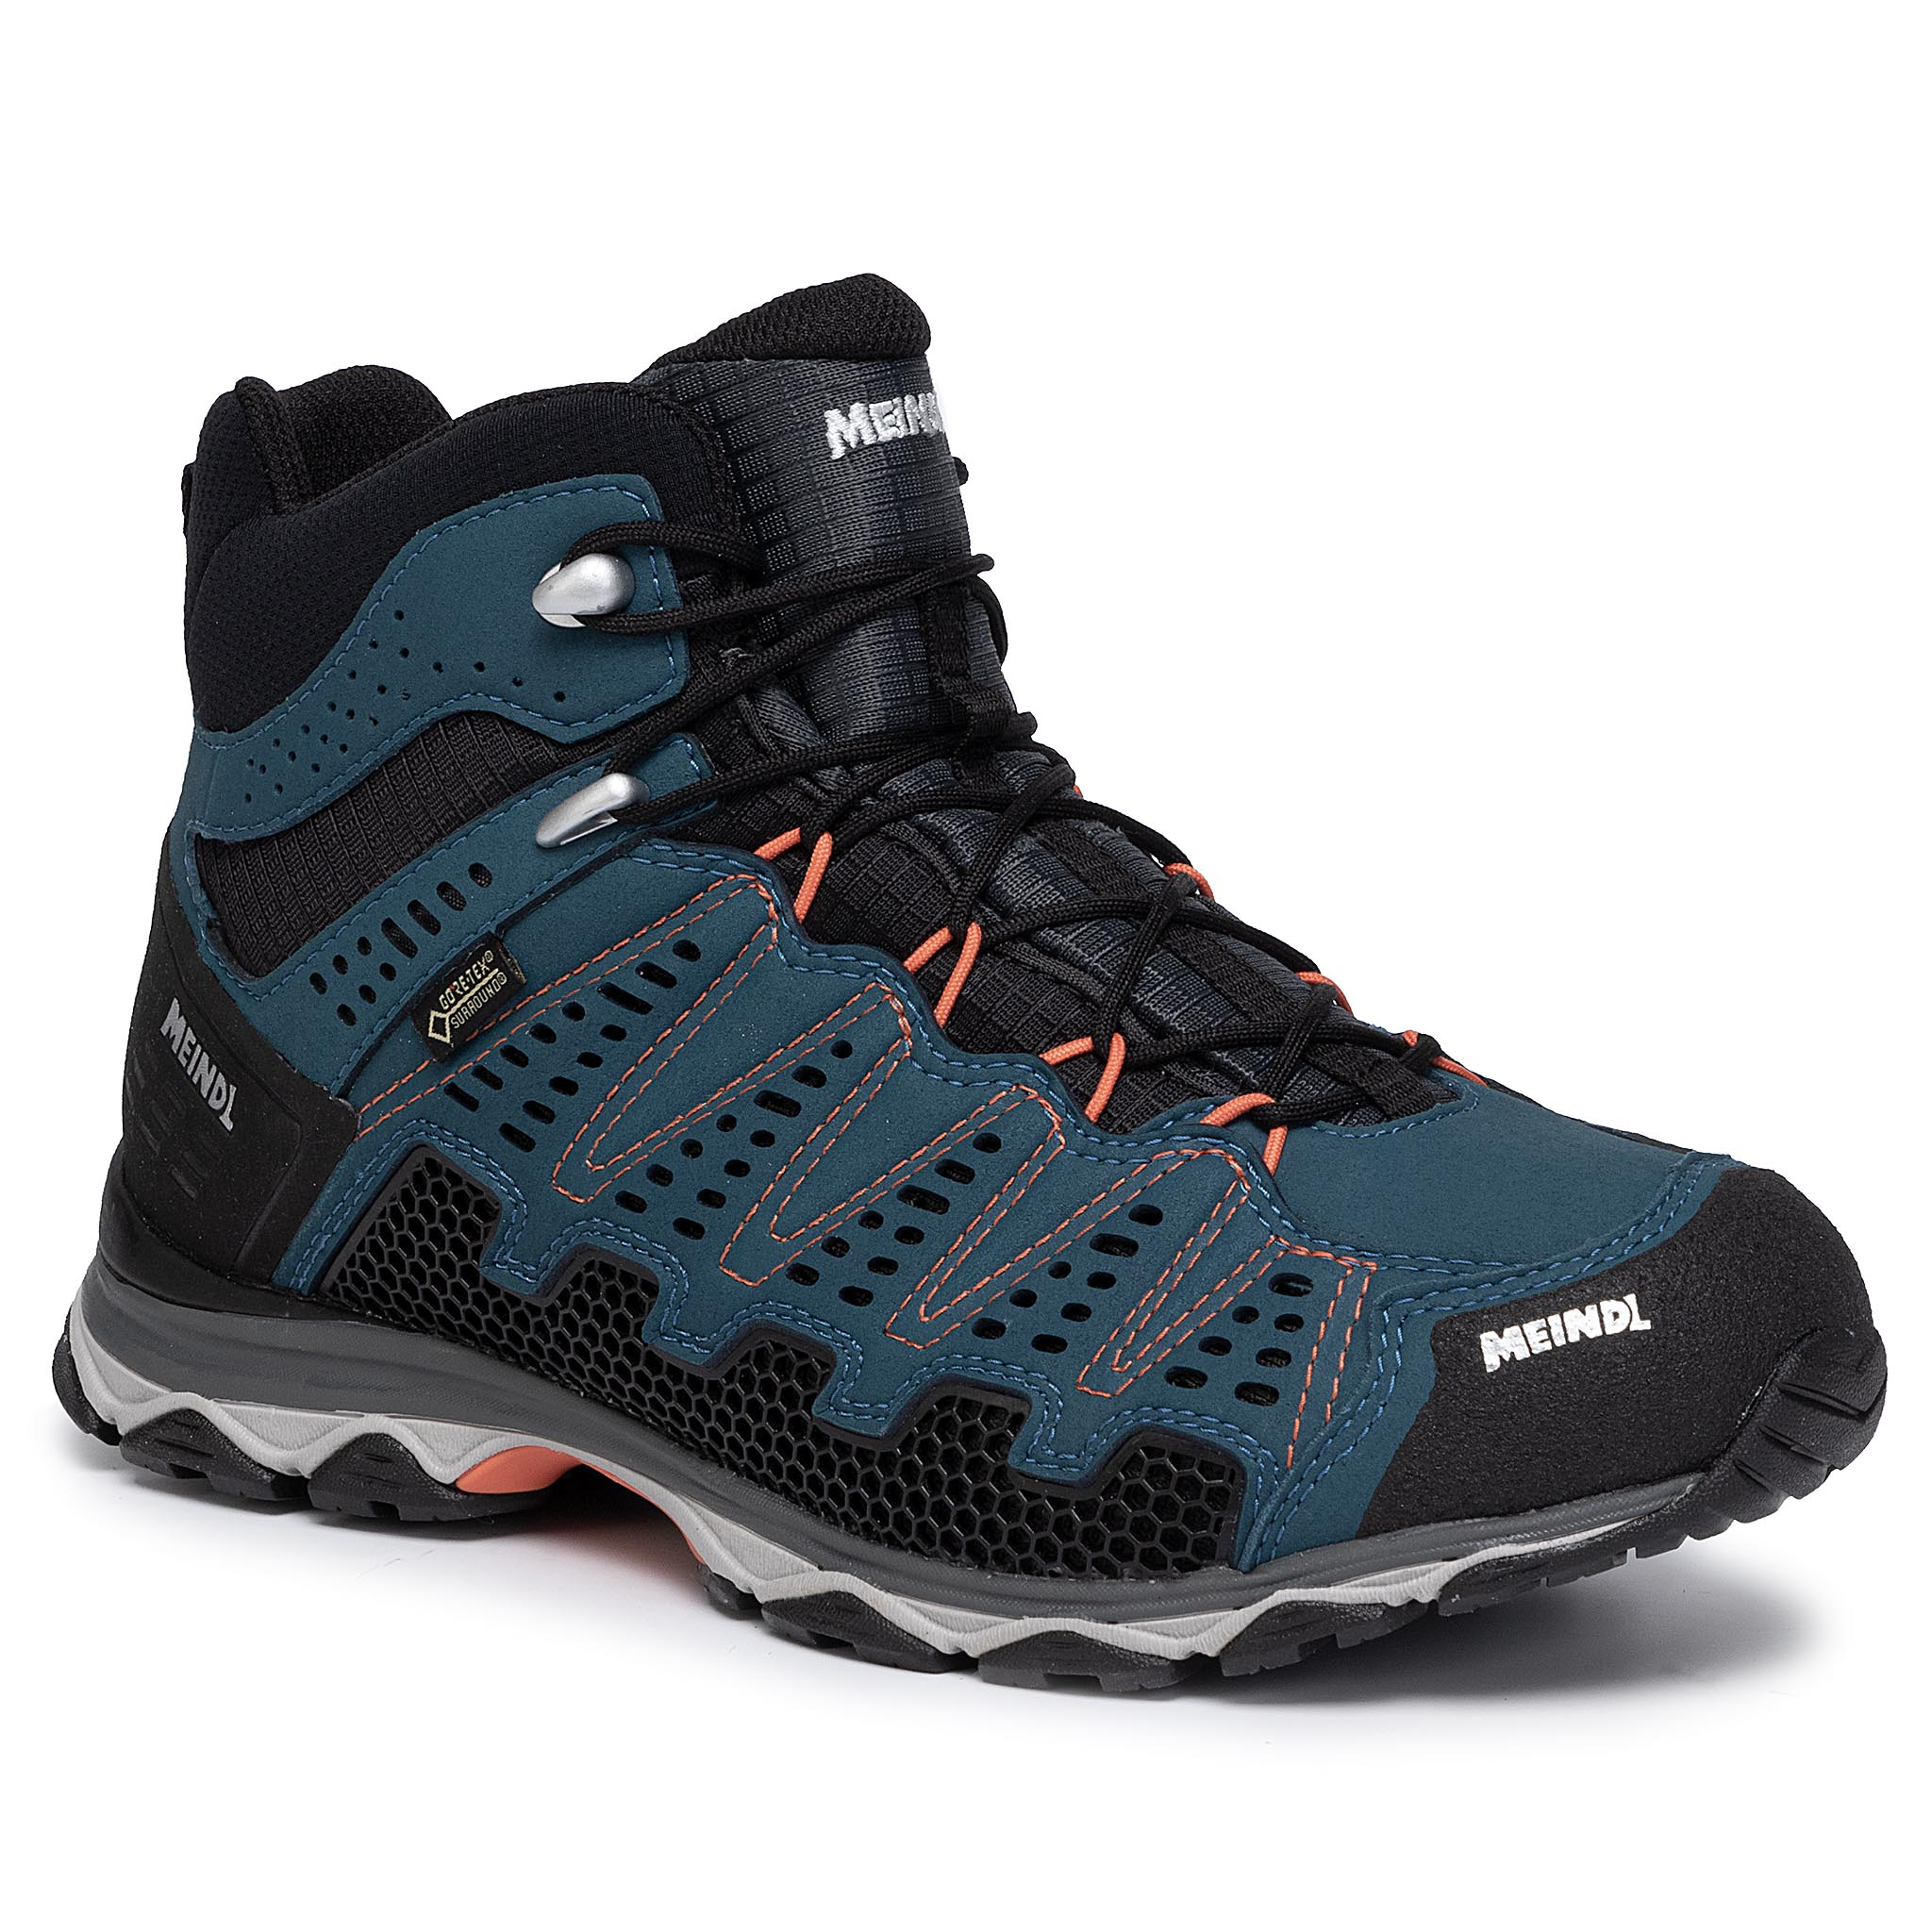 Trekkings MEINDL - X-So 70 Mid Gtx GORE-TEX 3986 Blau/Orange 09